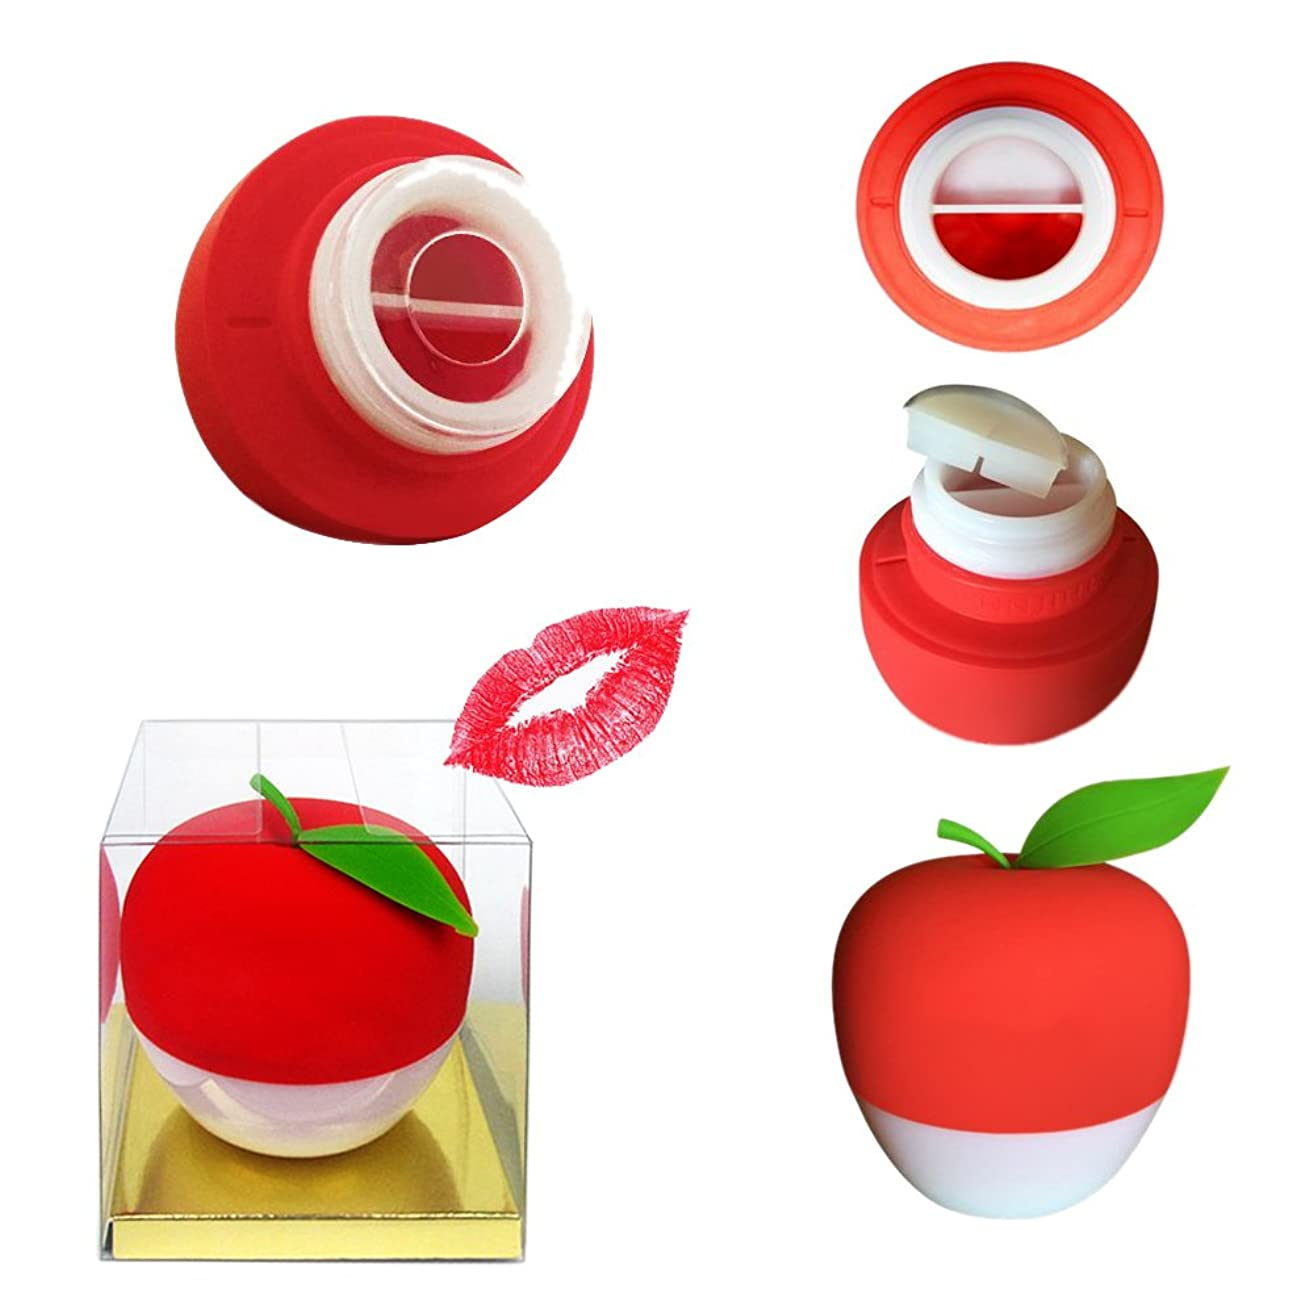 Lesnic Sexy Full Best Lip Plumpers Device Enhancer Hot Sexy Mouth Beauty Lip Pump Enhancement 2017 New Style, Pump Device Quick Lip Plumper Enhancer (Red Plumper)